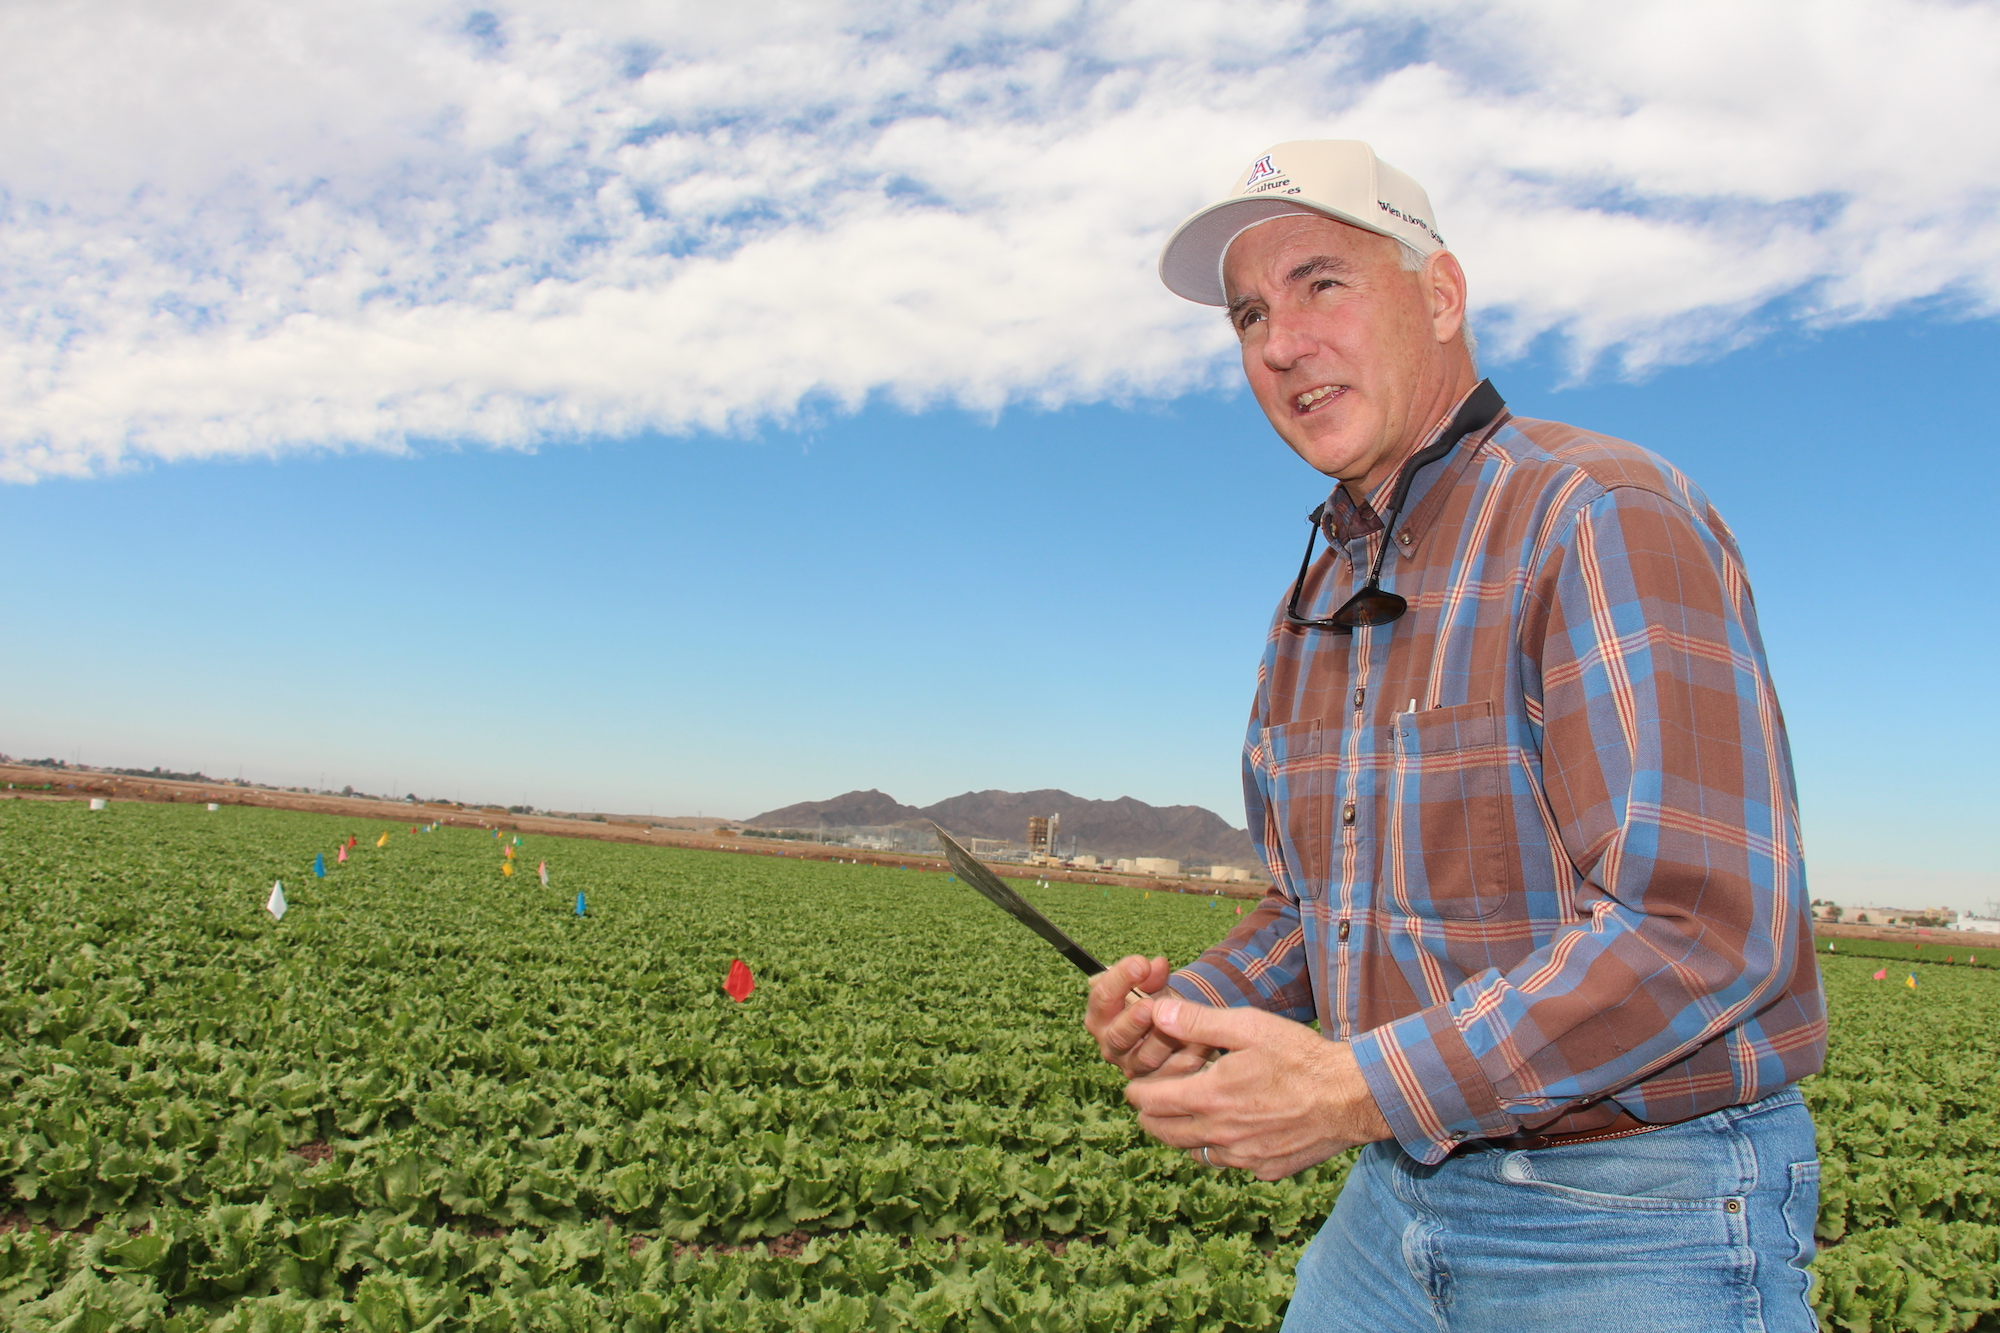 An endowed chair in integrated pest management will honor John Palumbo, a cooperative extension specialist at the Yuma Agricultural Center, and his contributions to the Yuma community.